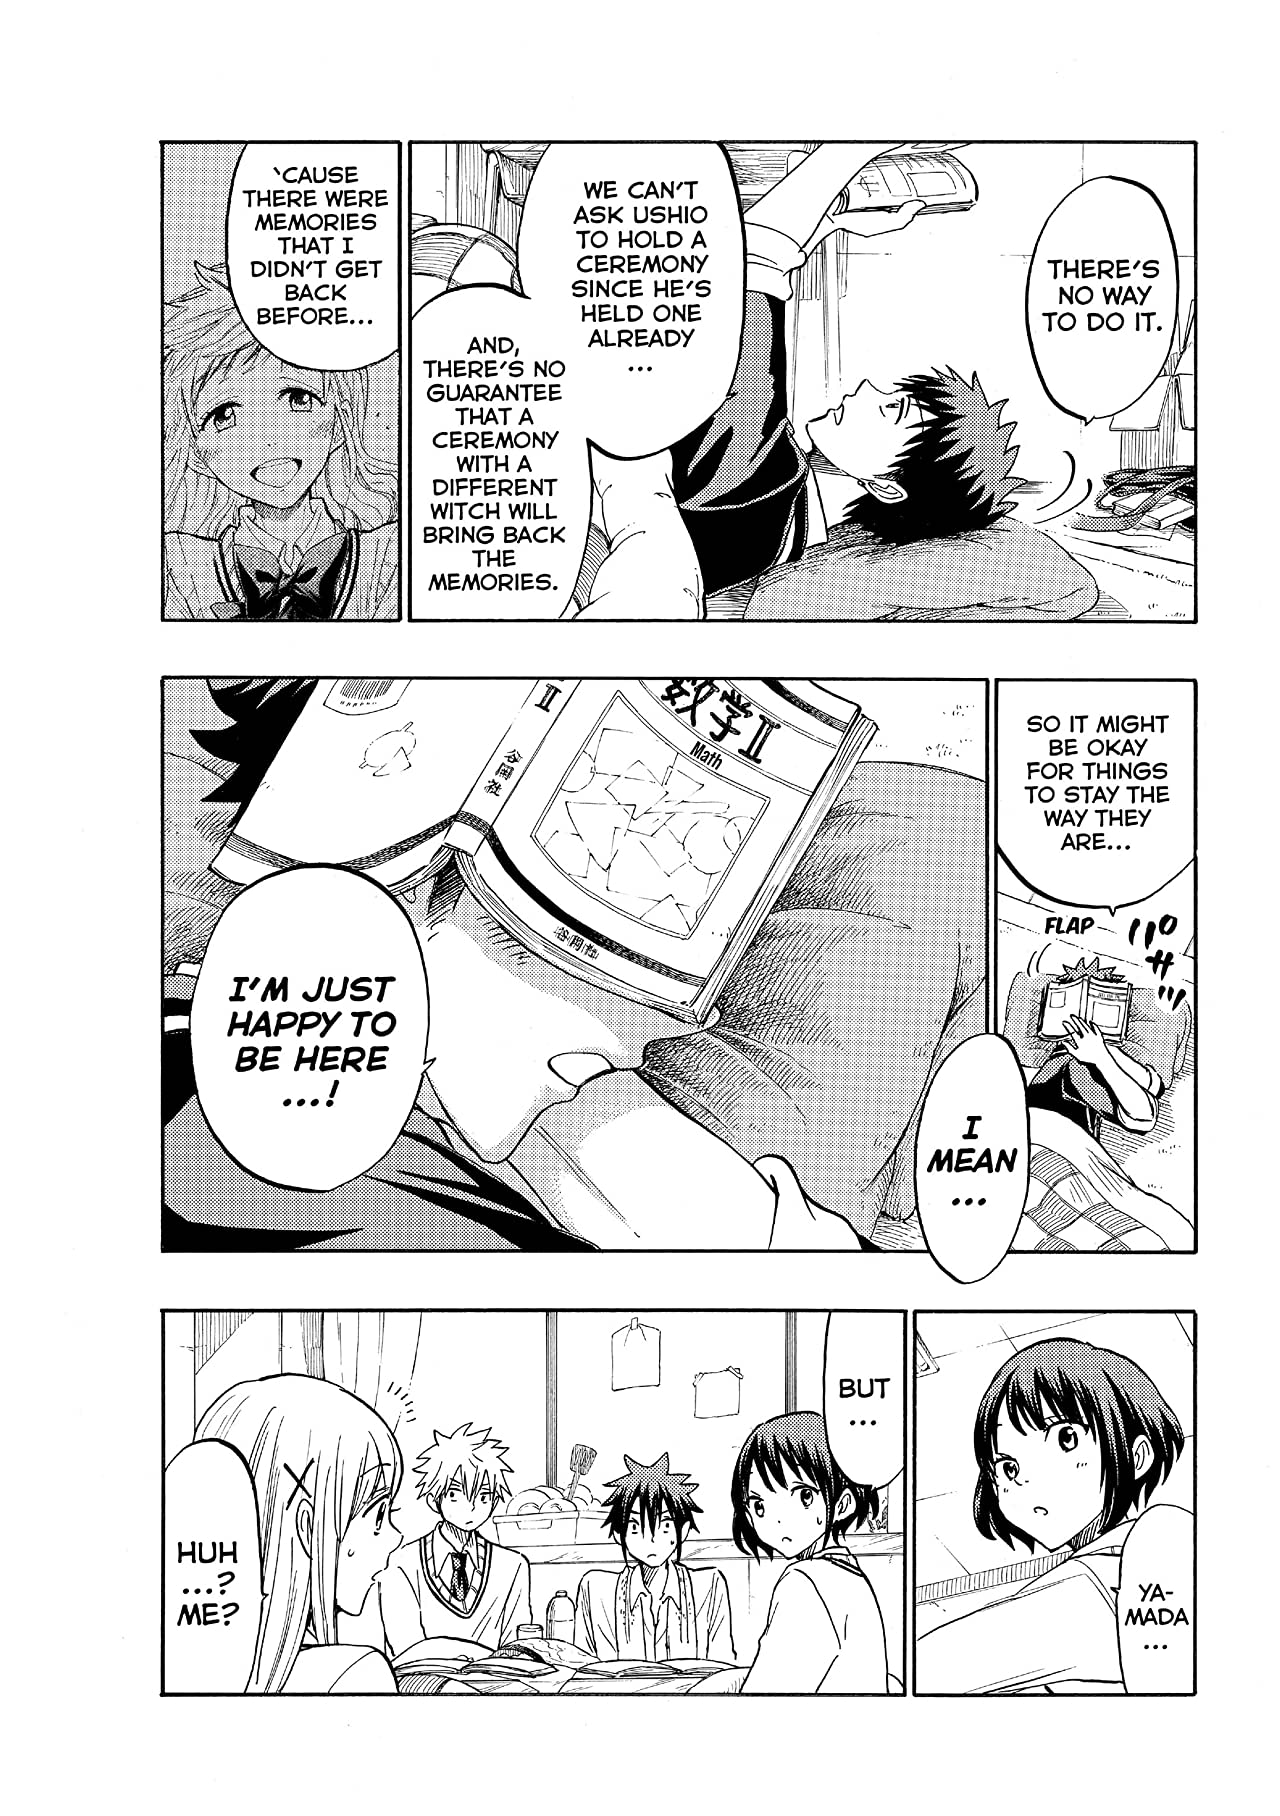 Yamada-kun and the Seven Witches #180